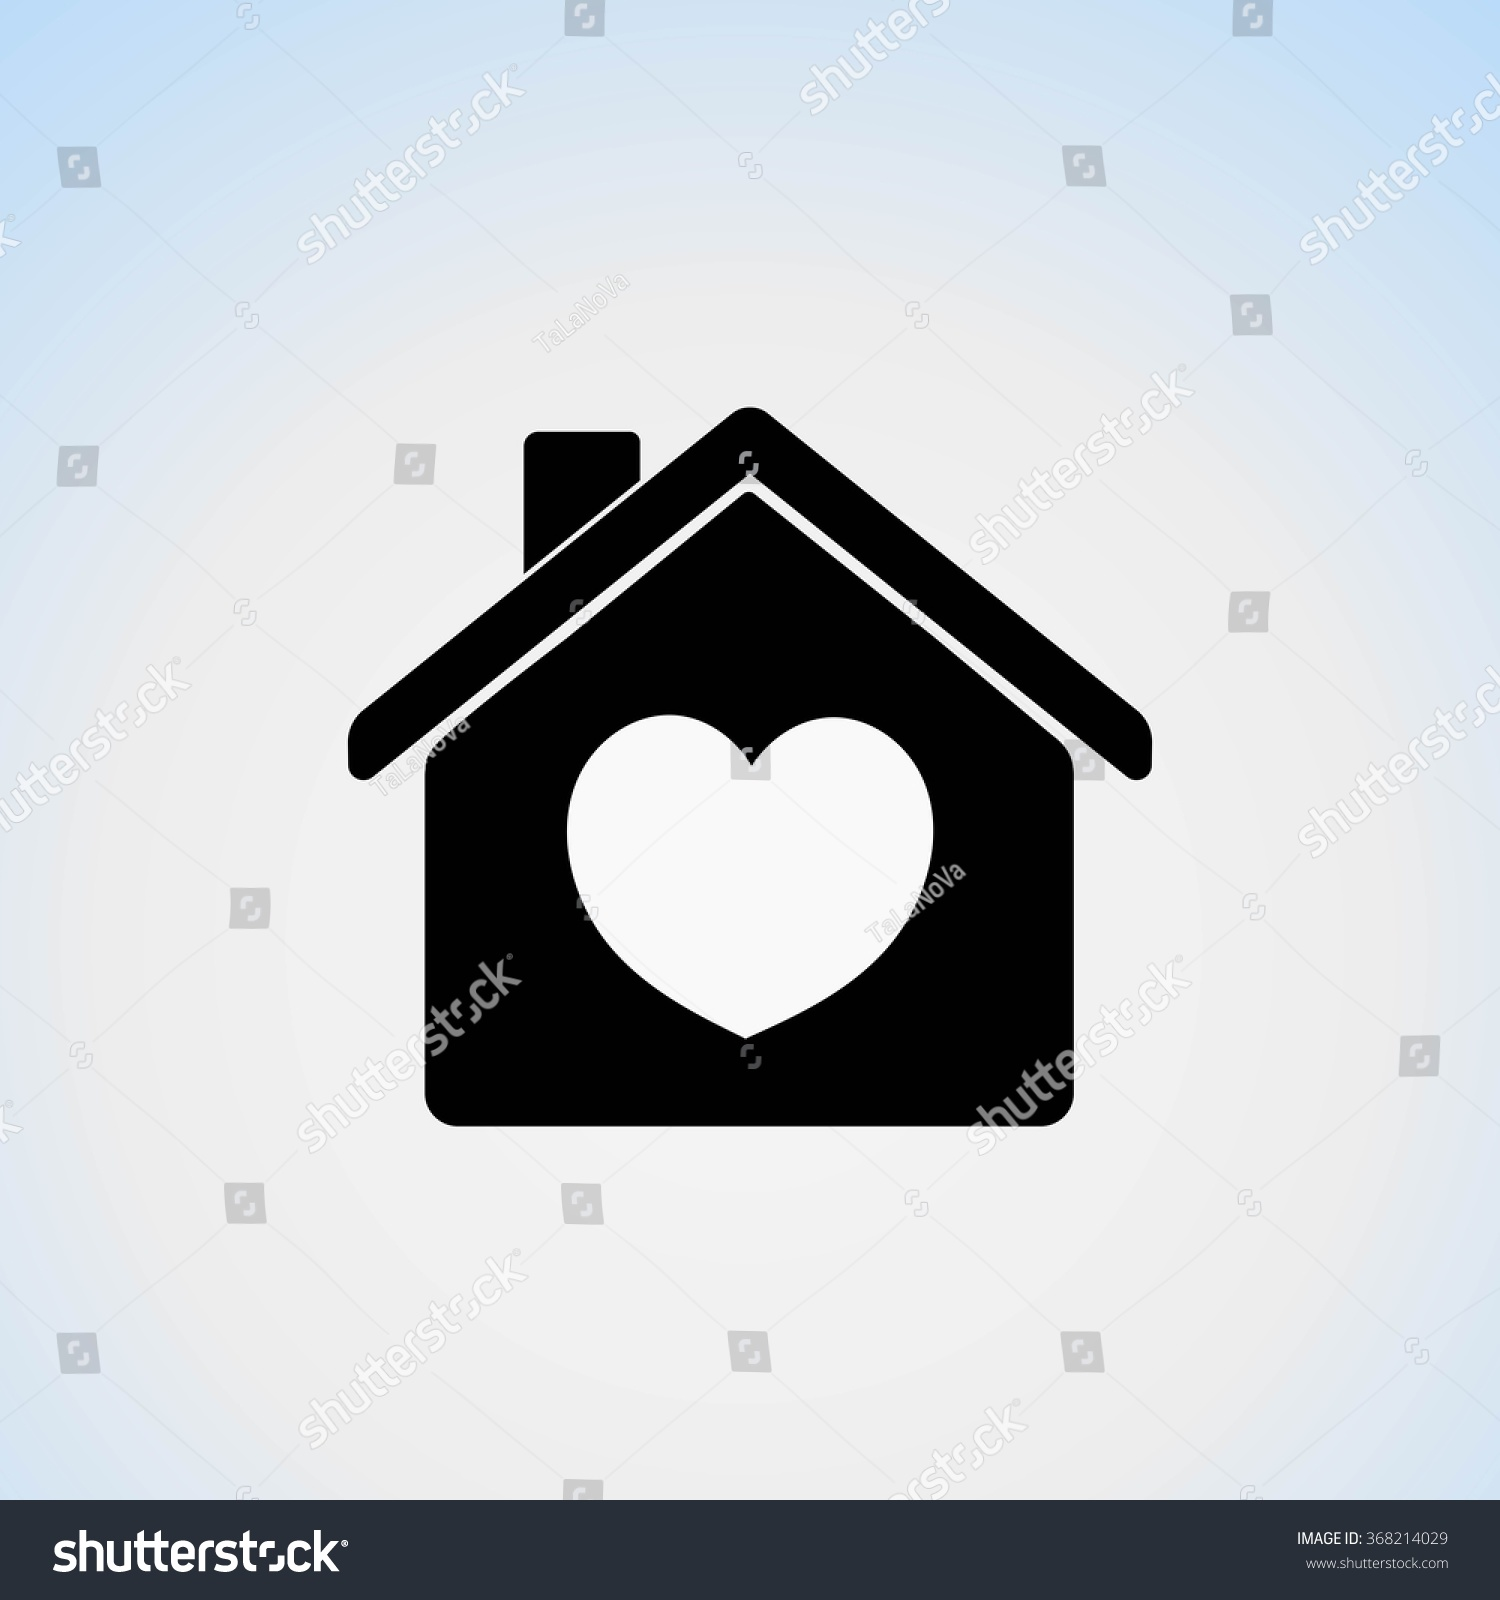 Icon house heart symbol his home stock vector 368214029 shutterstock icon house with a heart as a symbol of his home where warmth and comfort biocorpaavc Images